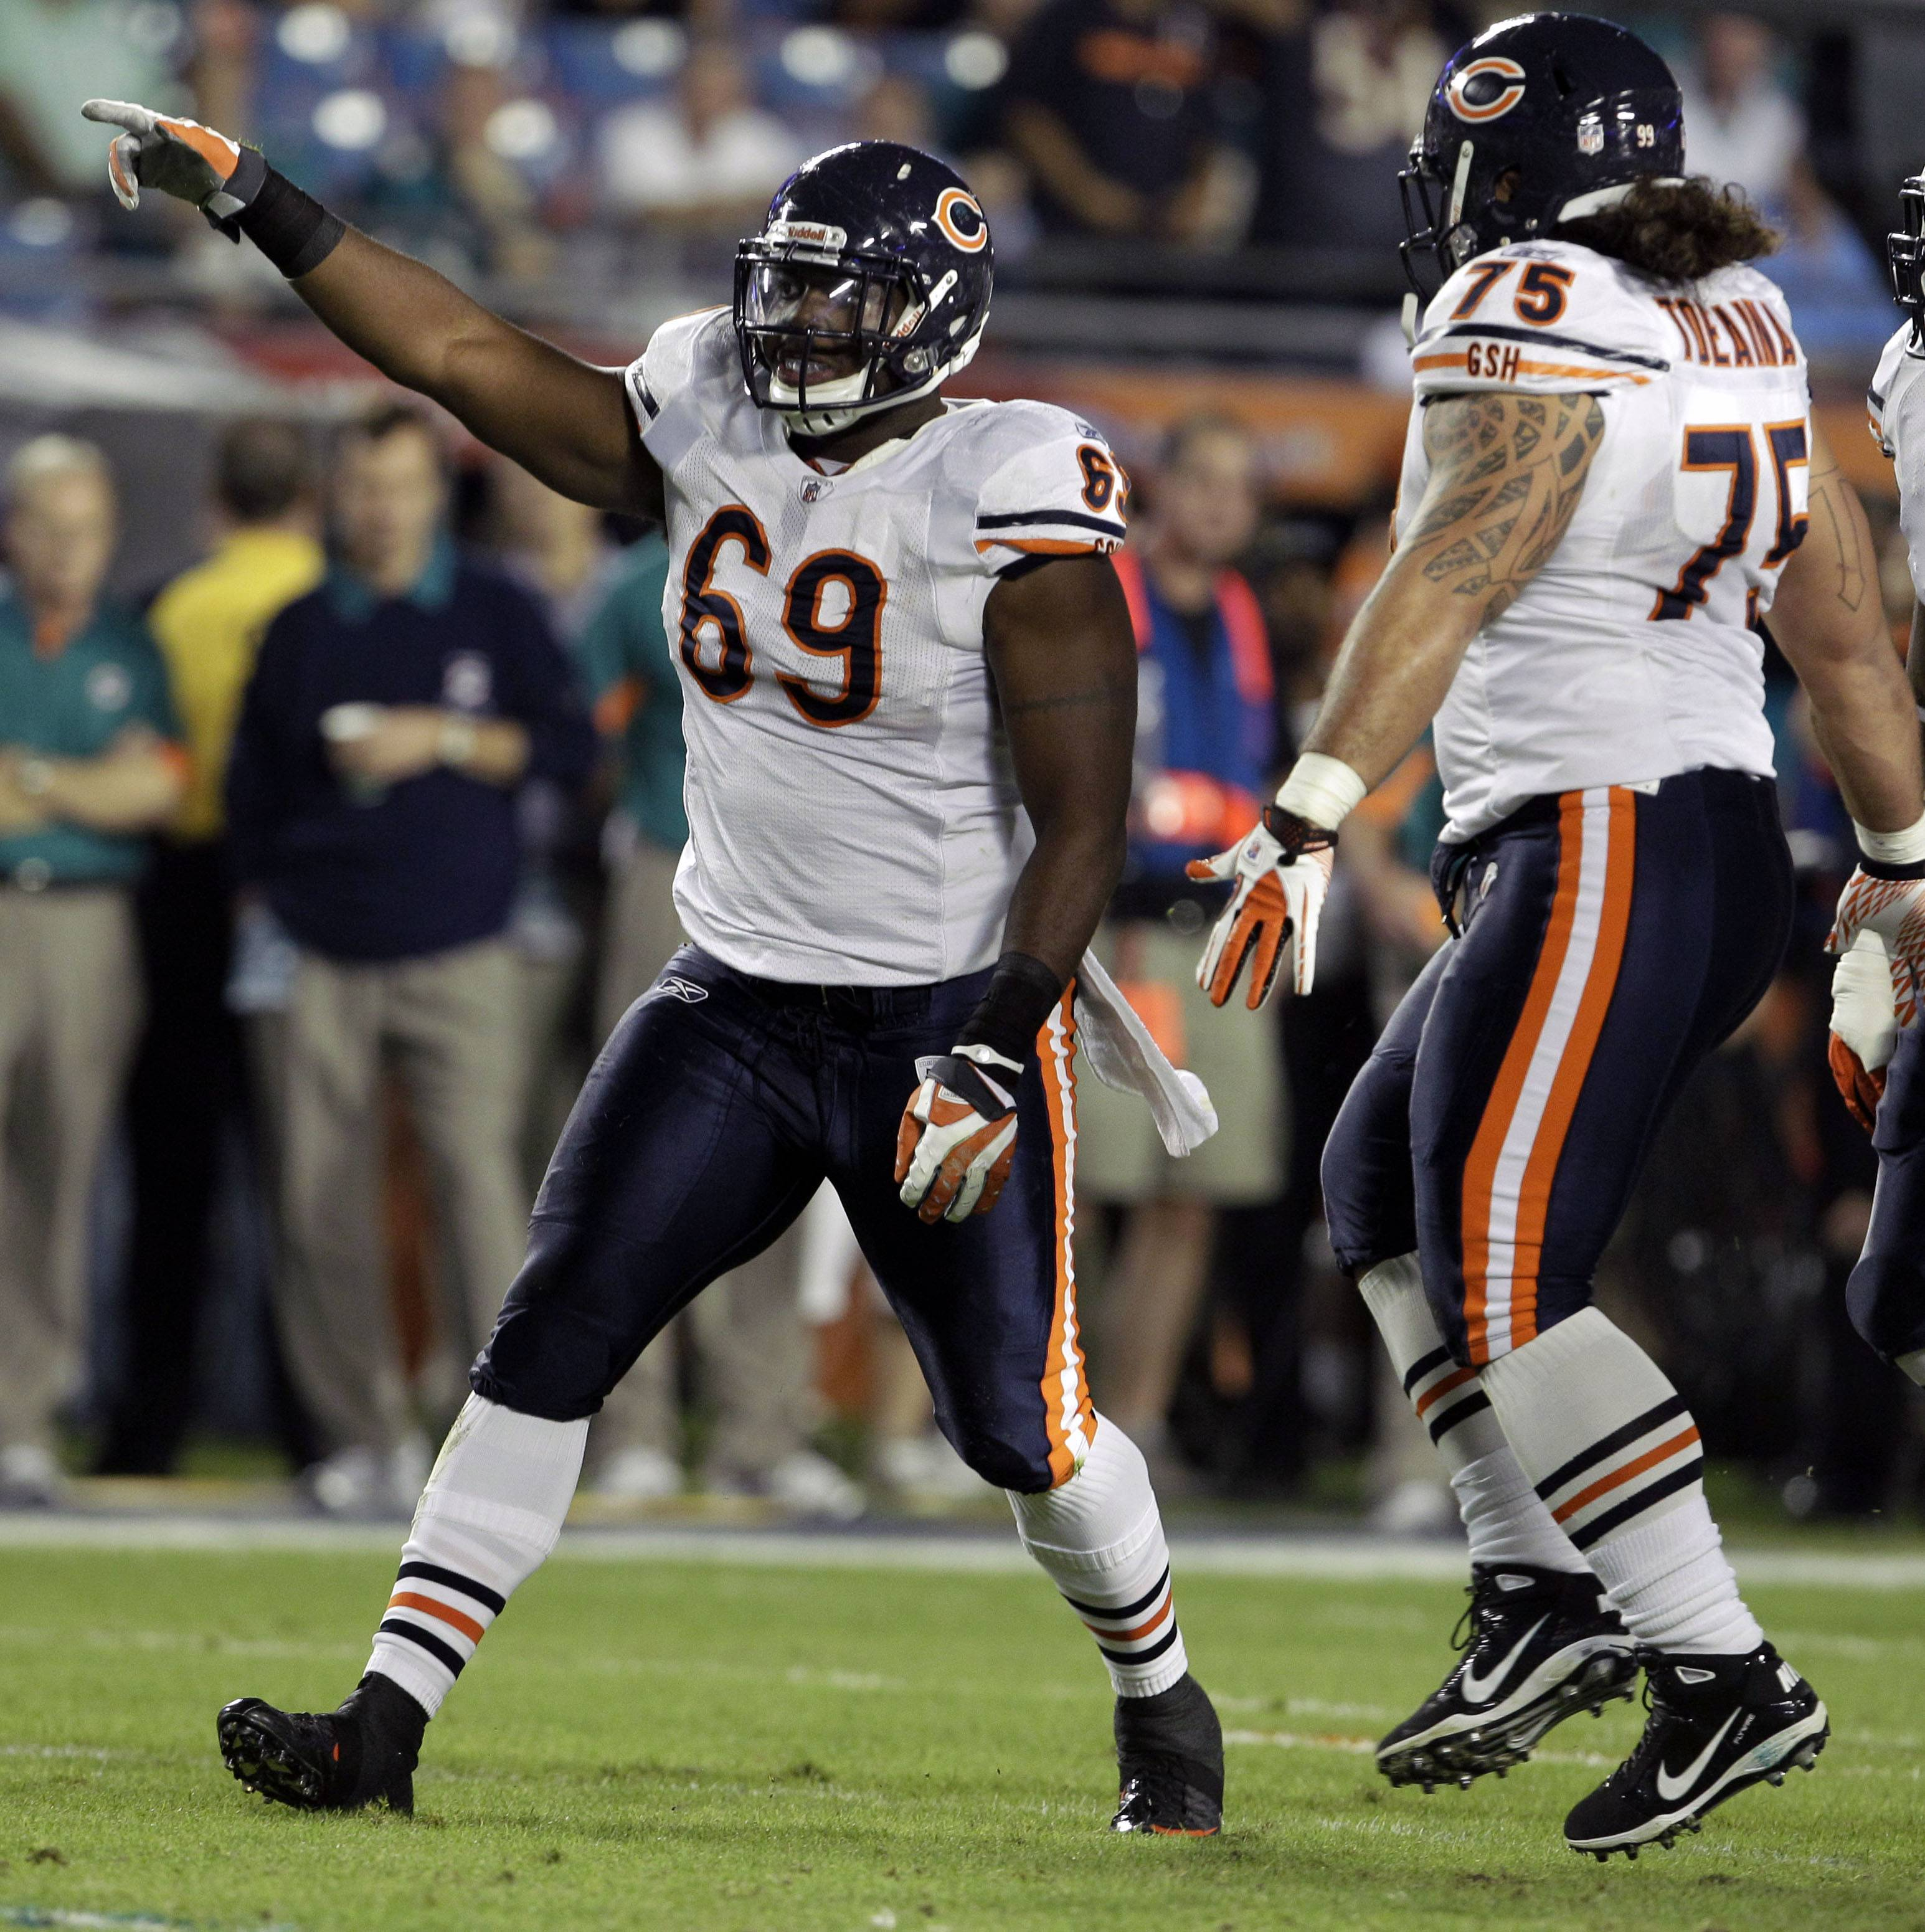 Bears defensive end Henry Melton celebrates with defensive tackle Matt Toeaina after sacking Miami Dolphins quarterback Tyler Thigpen.